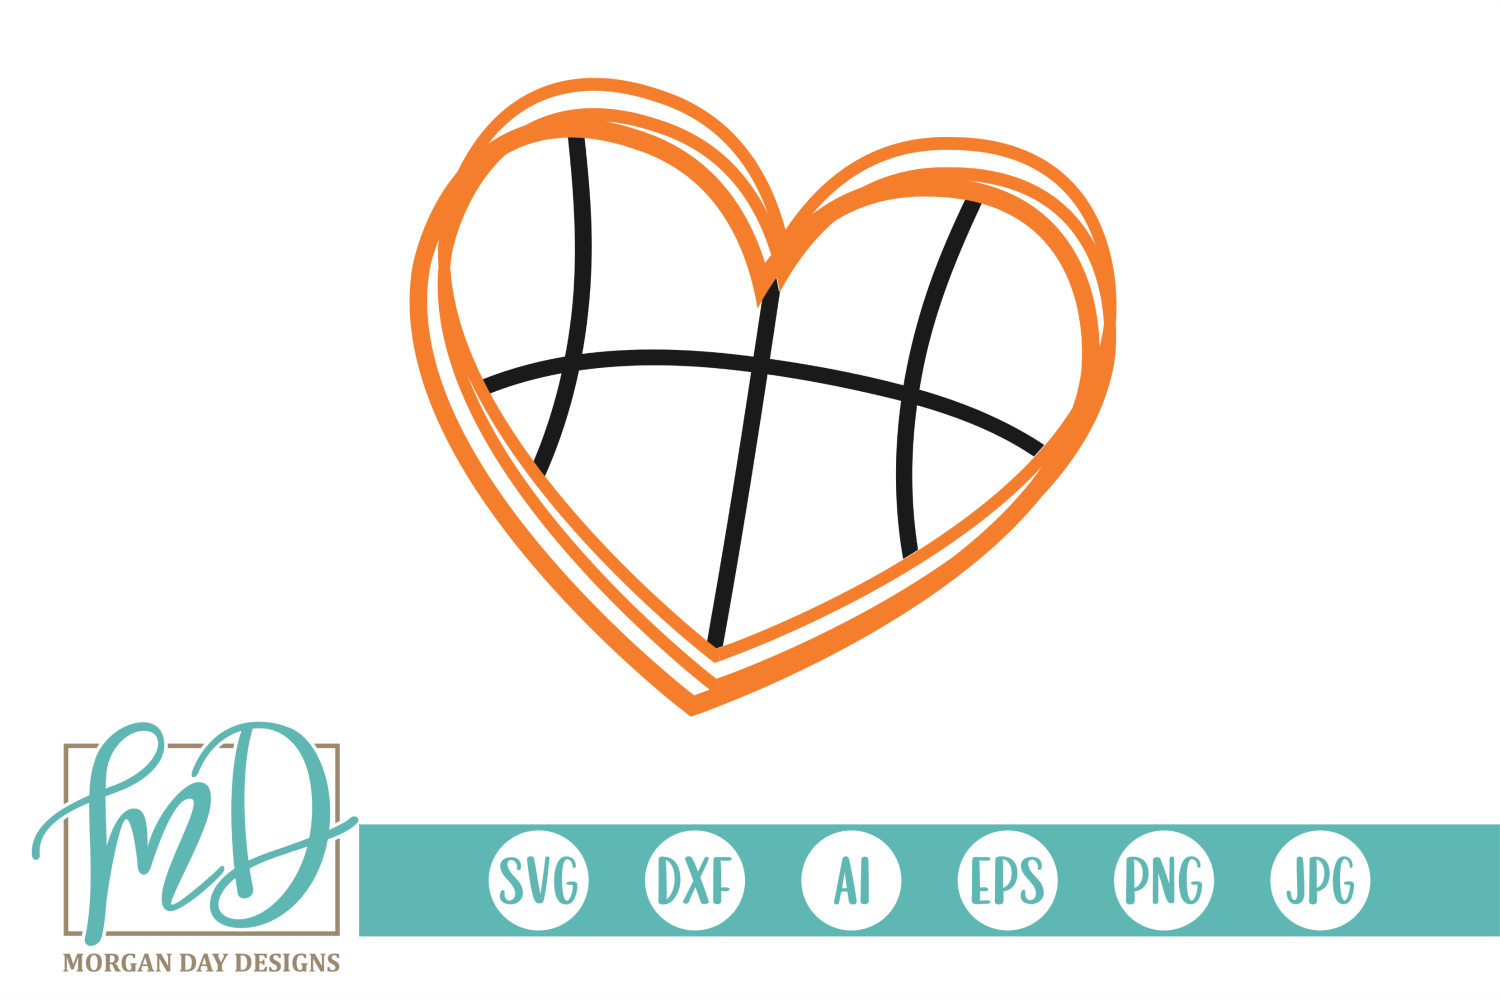 Download Free Basketball Heart Graphic By Morgan Day Designs Creative Fabrica for Cricut Explore, Silhouette and other cutting machines.